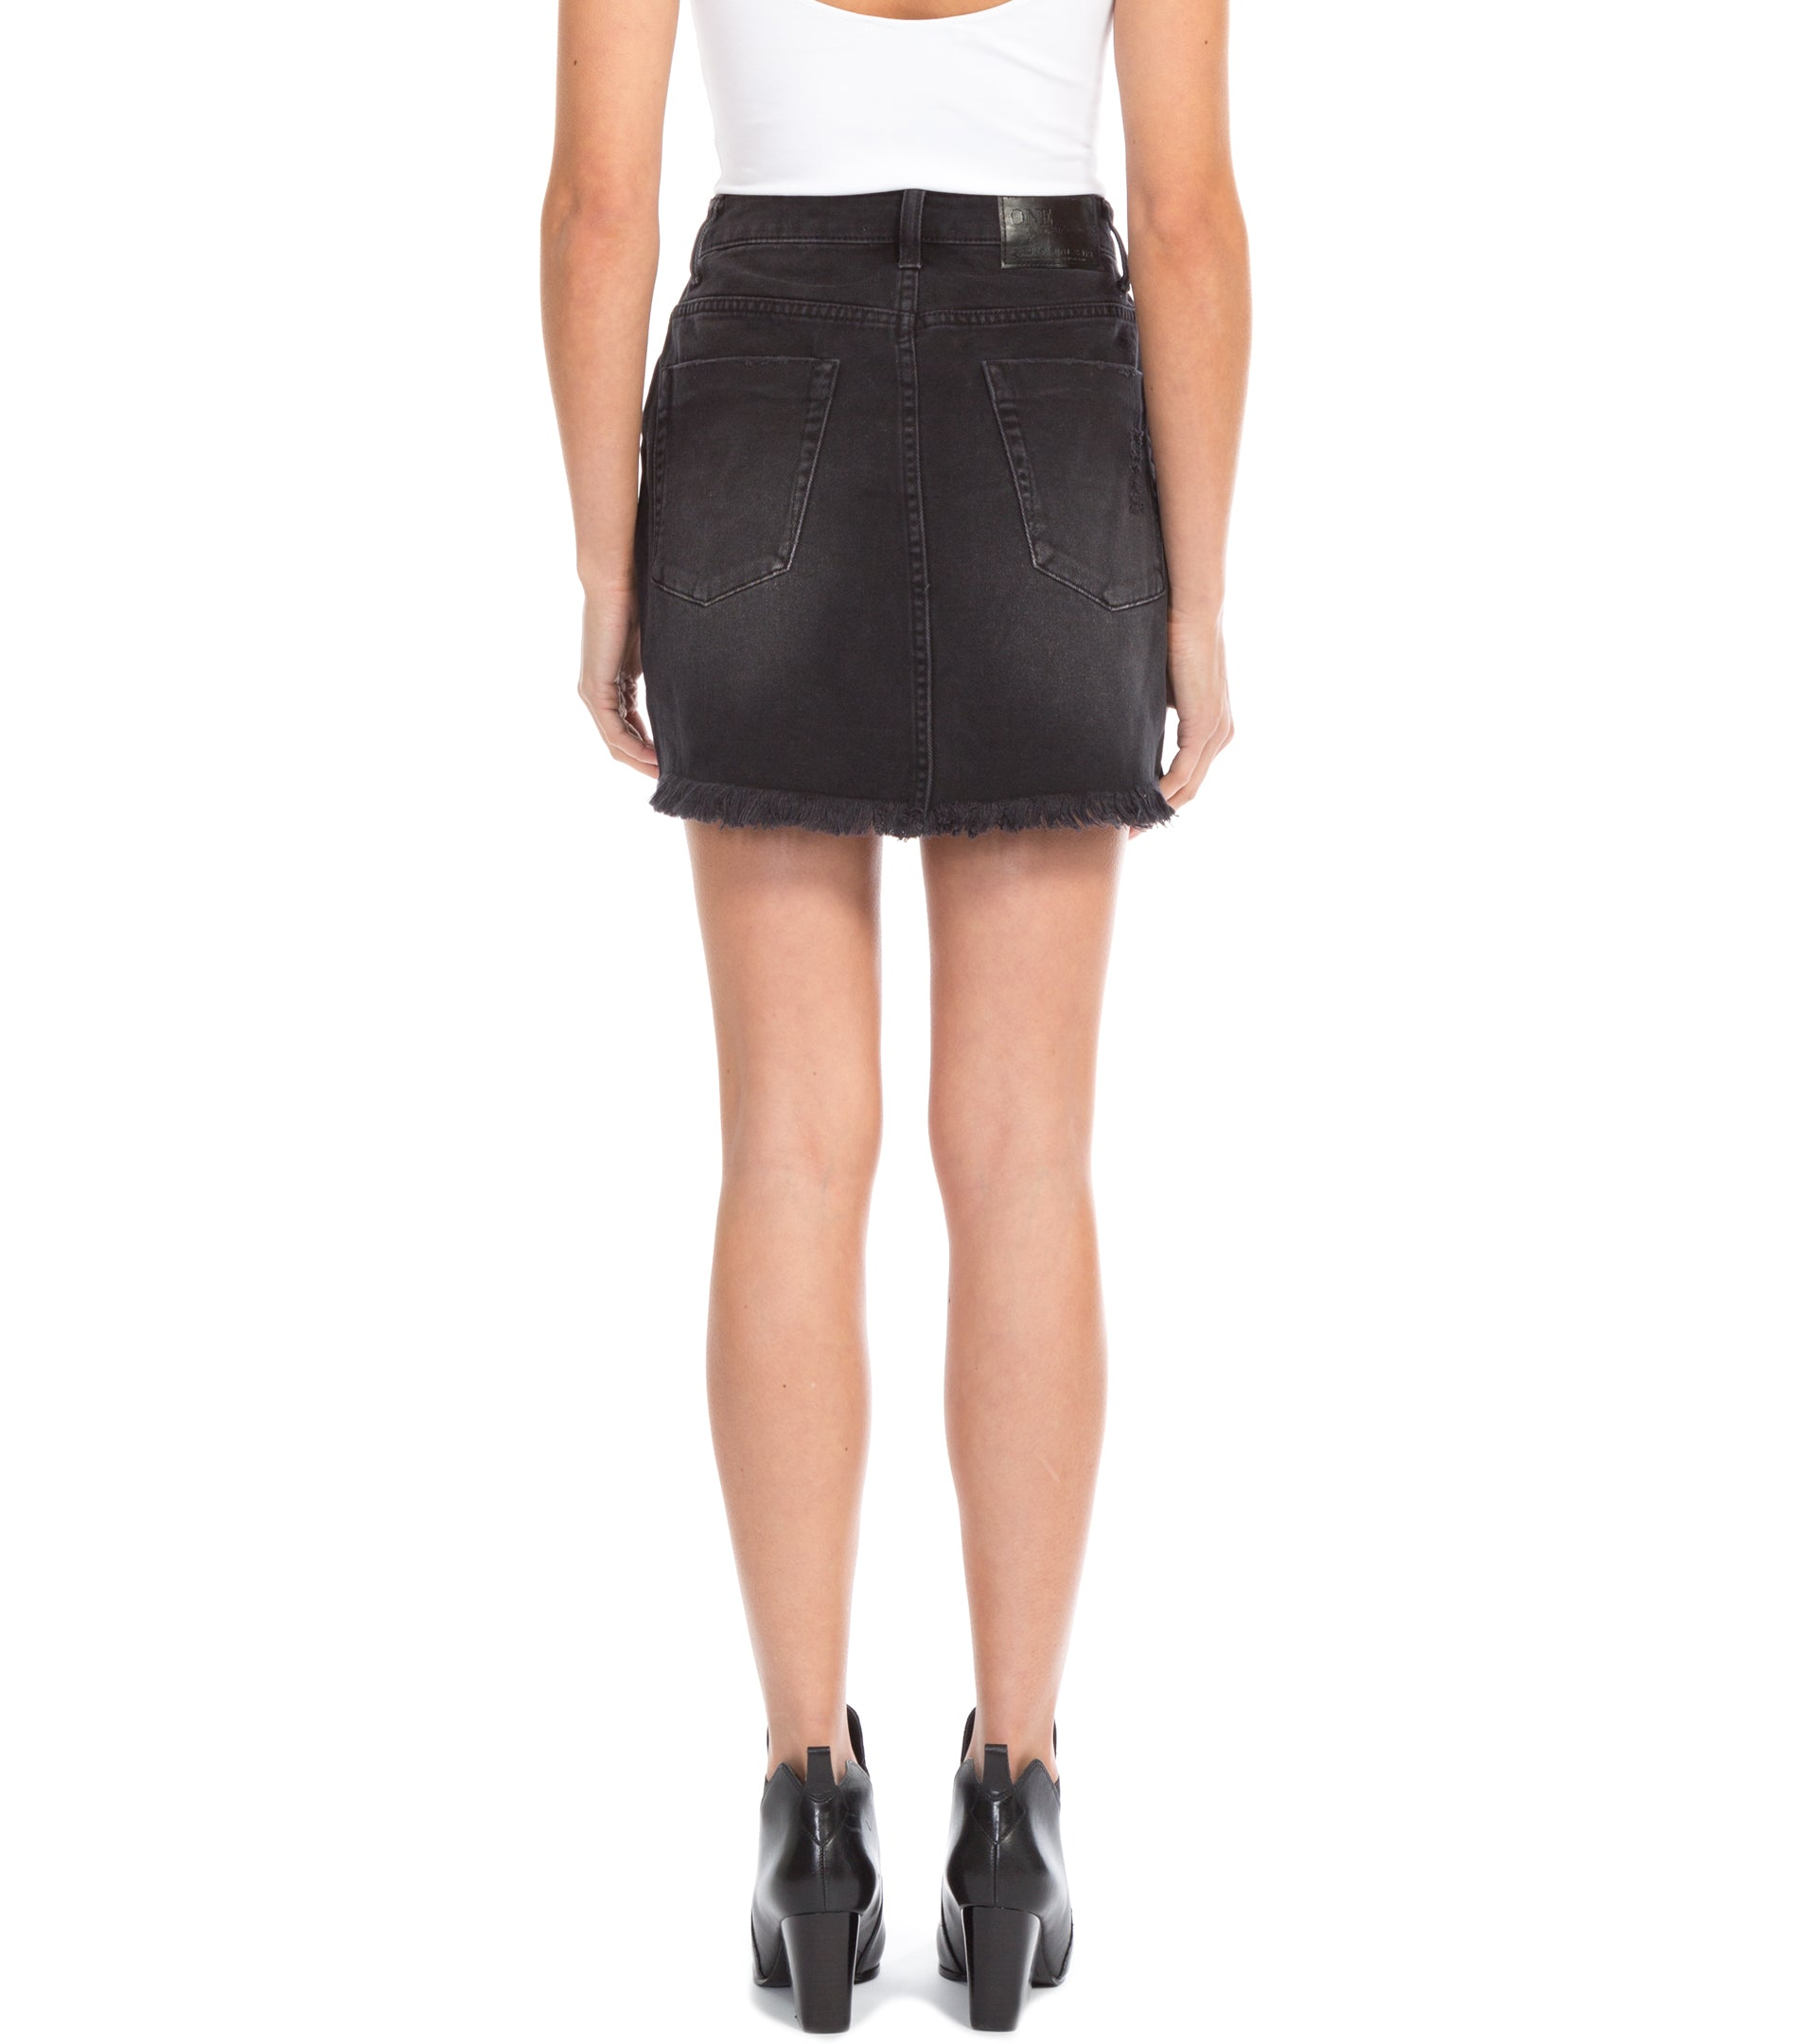 2020 MINI HIGH WAIST DENIM SKIRT